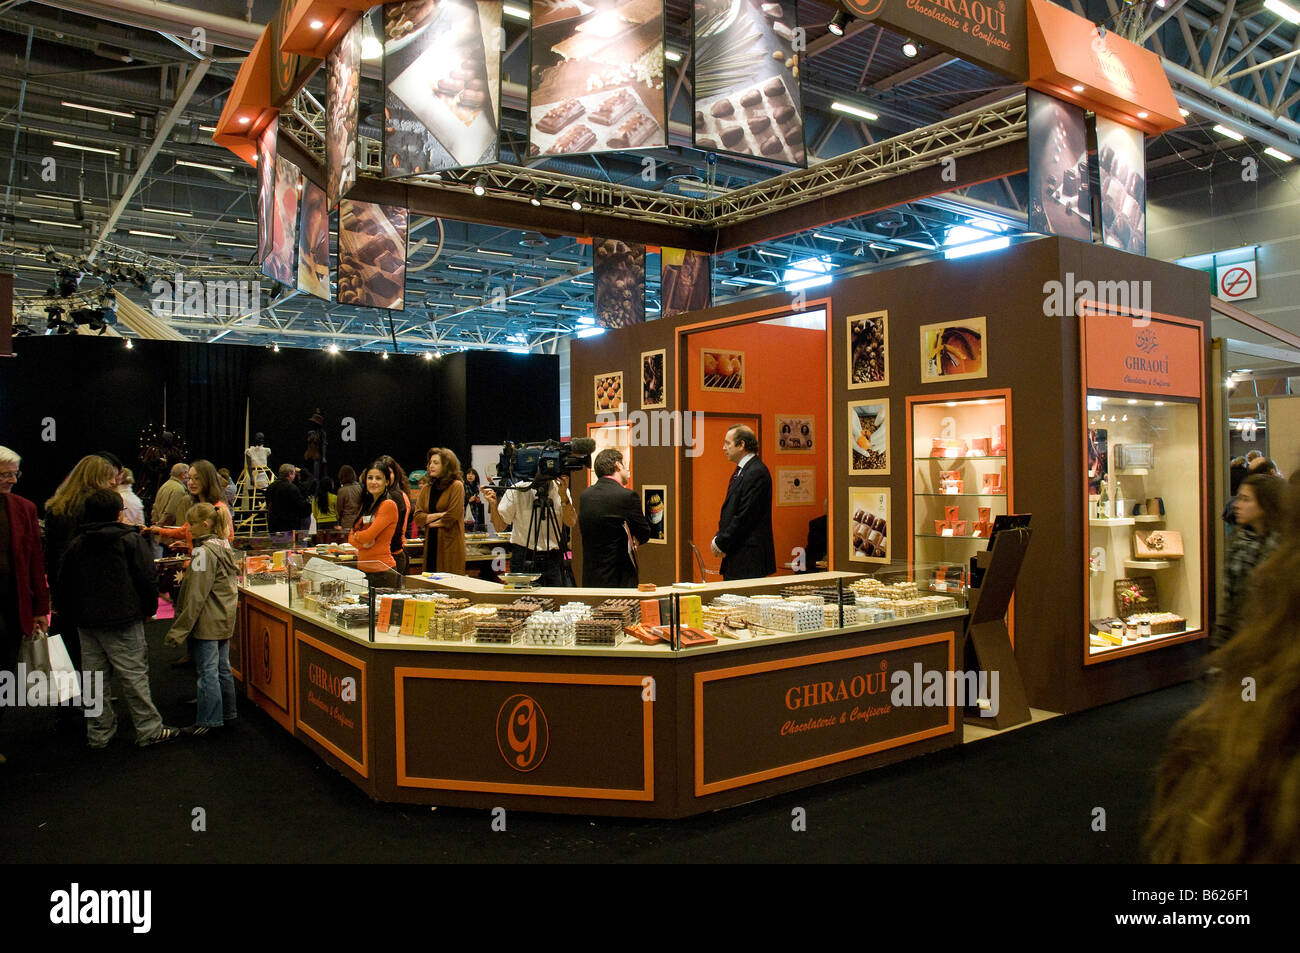 Ghraoui chocolate stand at the paris 39 salon du chocolat for Salon du the